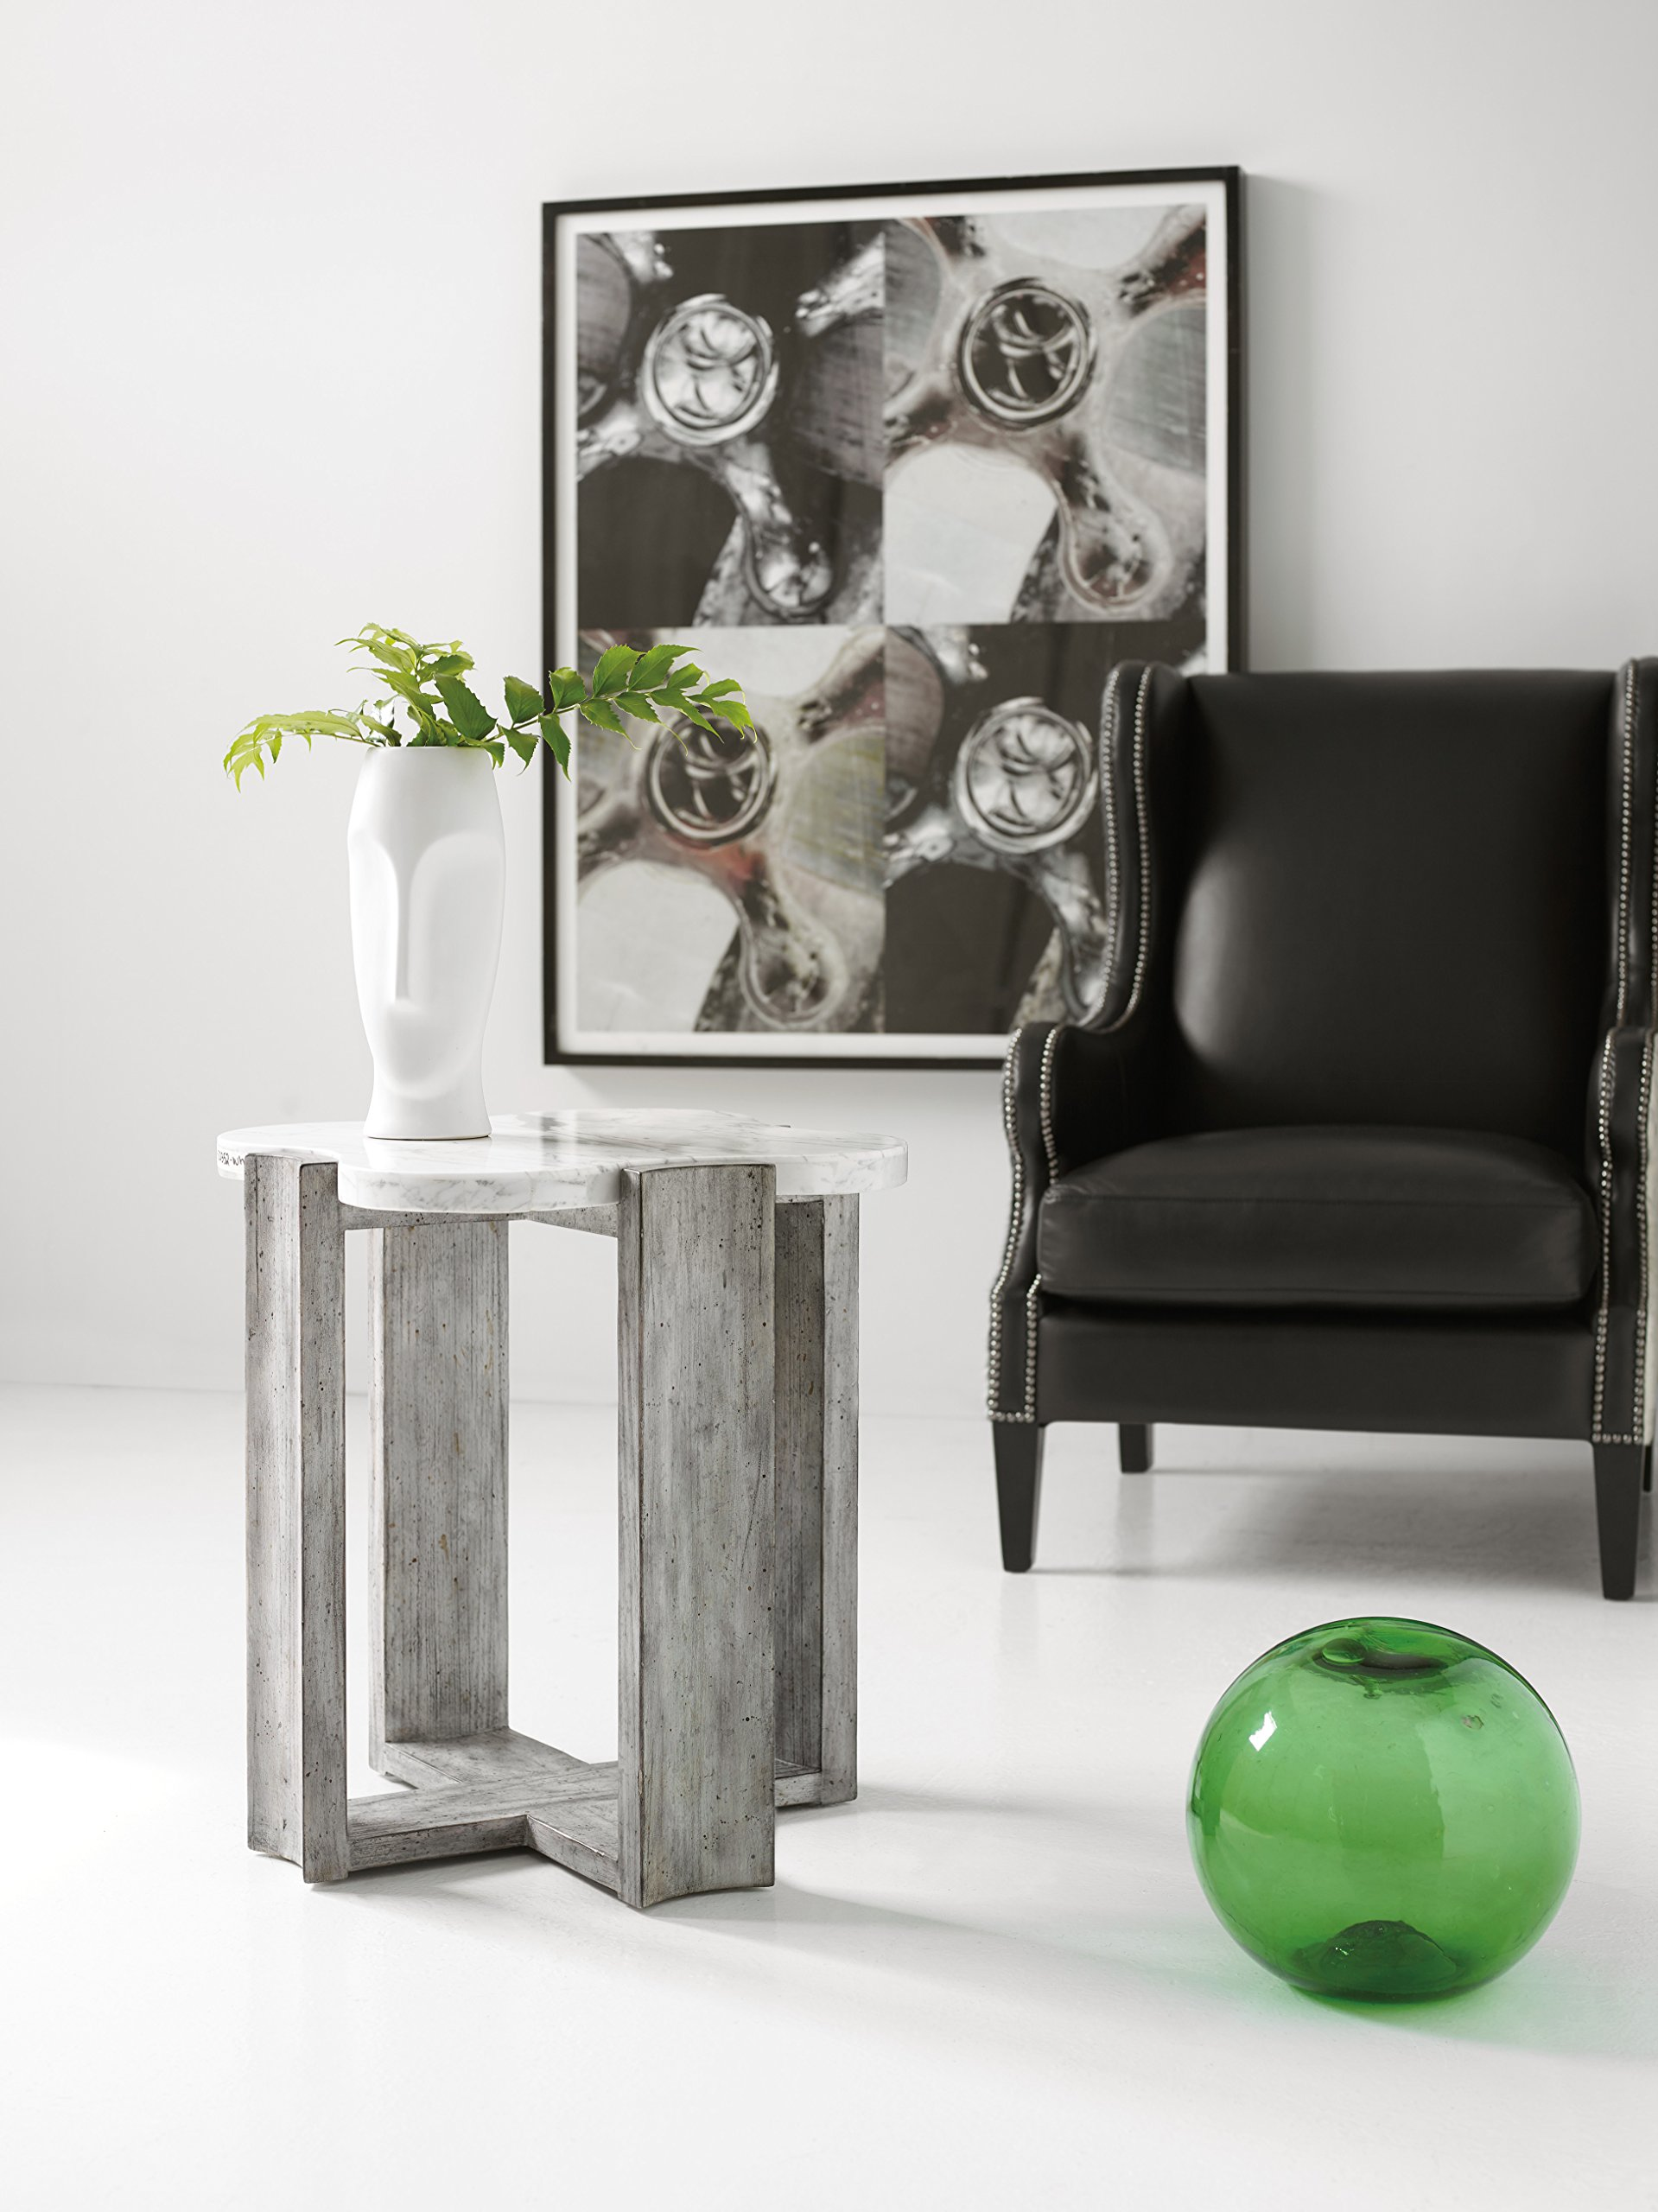 Harris & Terry AMZ2274254 End Table, Gray - Gray wood Finish Modern/contemporary style Marble Top - living-room-furniture, living-room, end-tables - 81uqcurZw L -